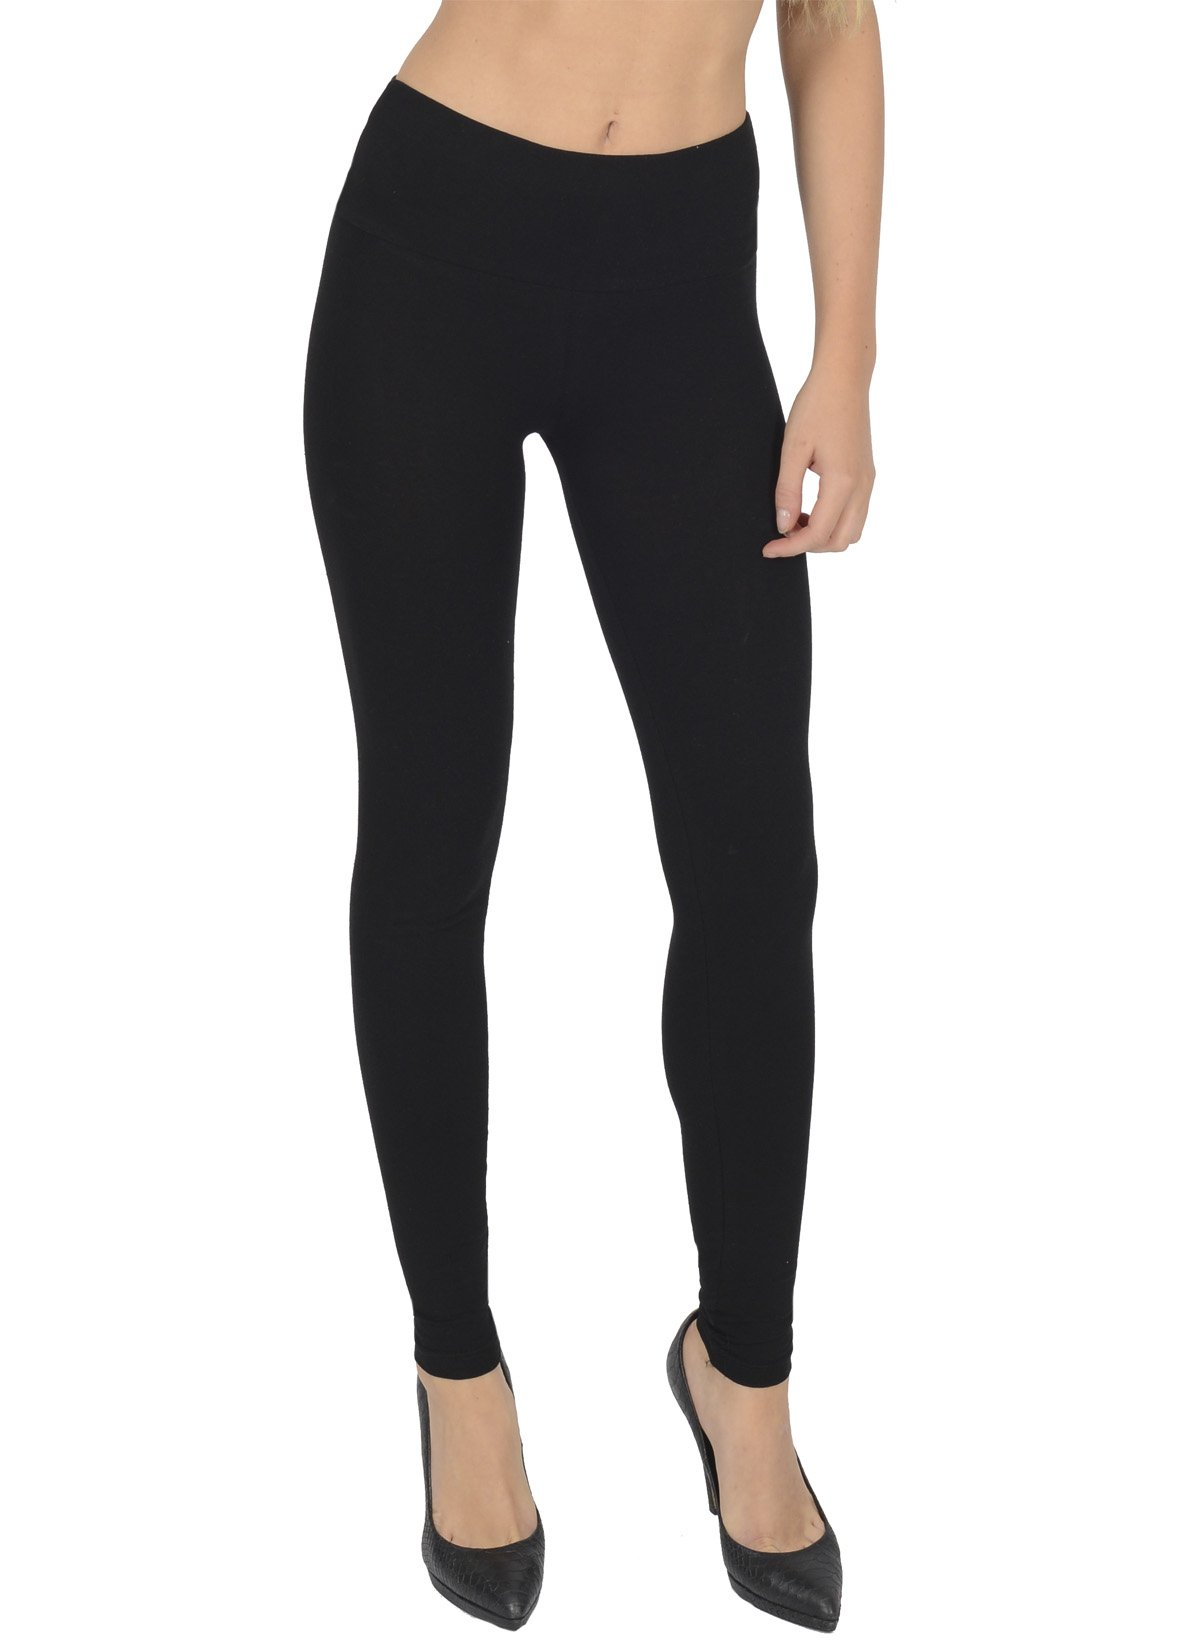 Today Is Her Women's High Waisted Full Length Cotton Leggings Extra Comfort Range, Plus Sizes - Size 12 Black